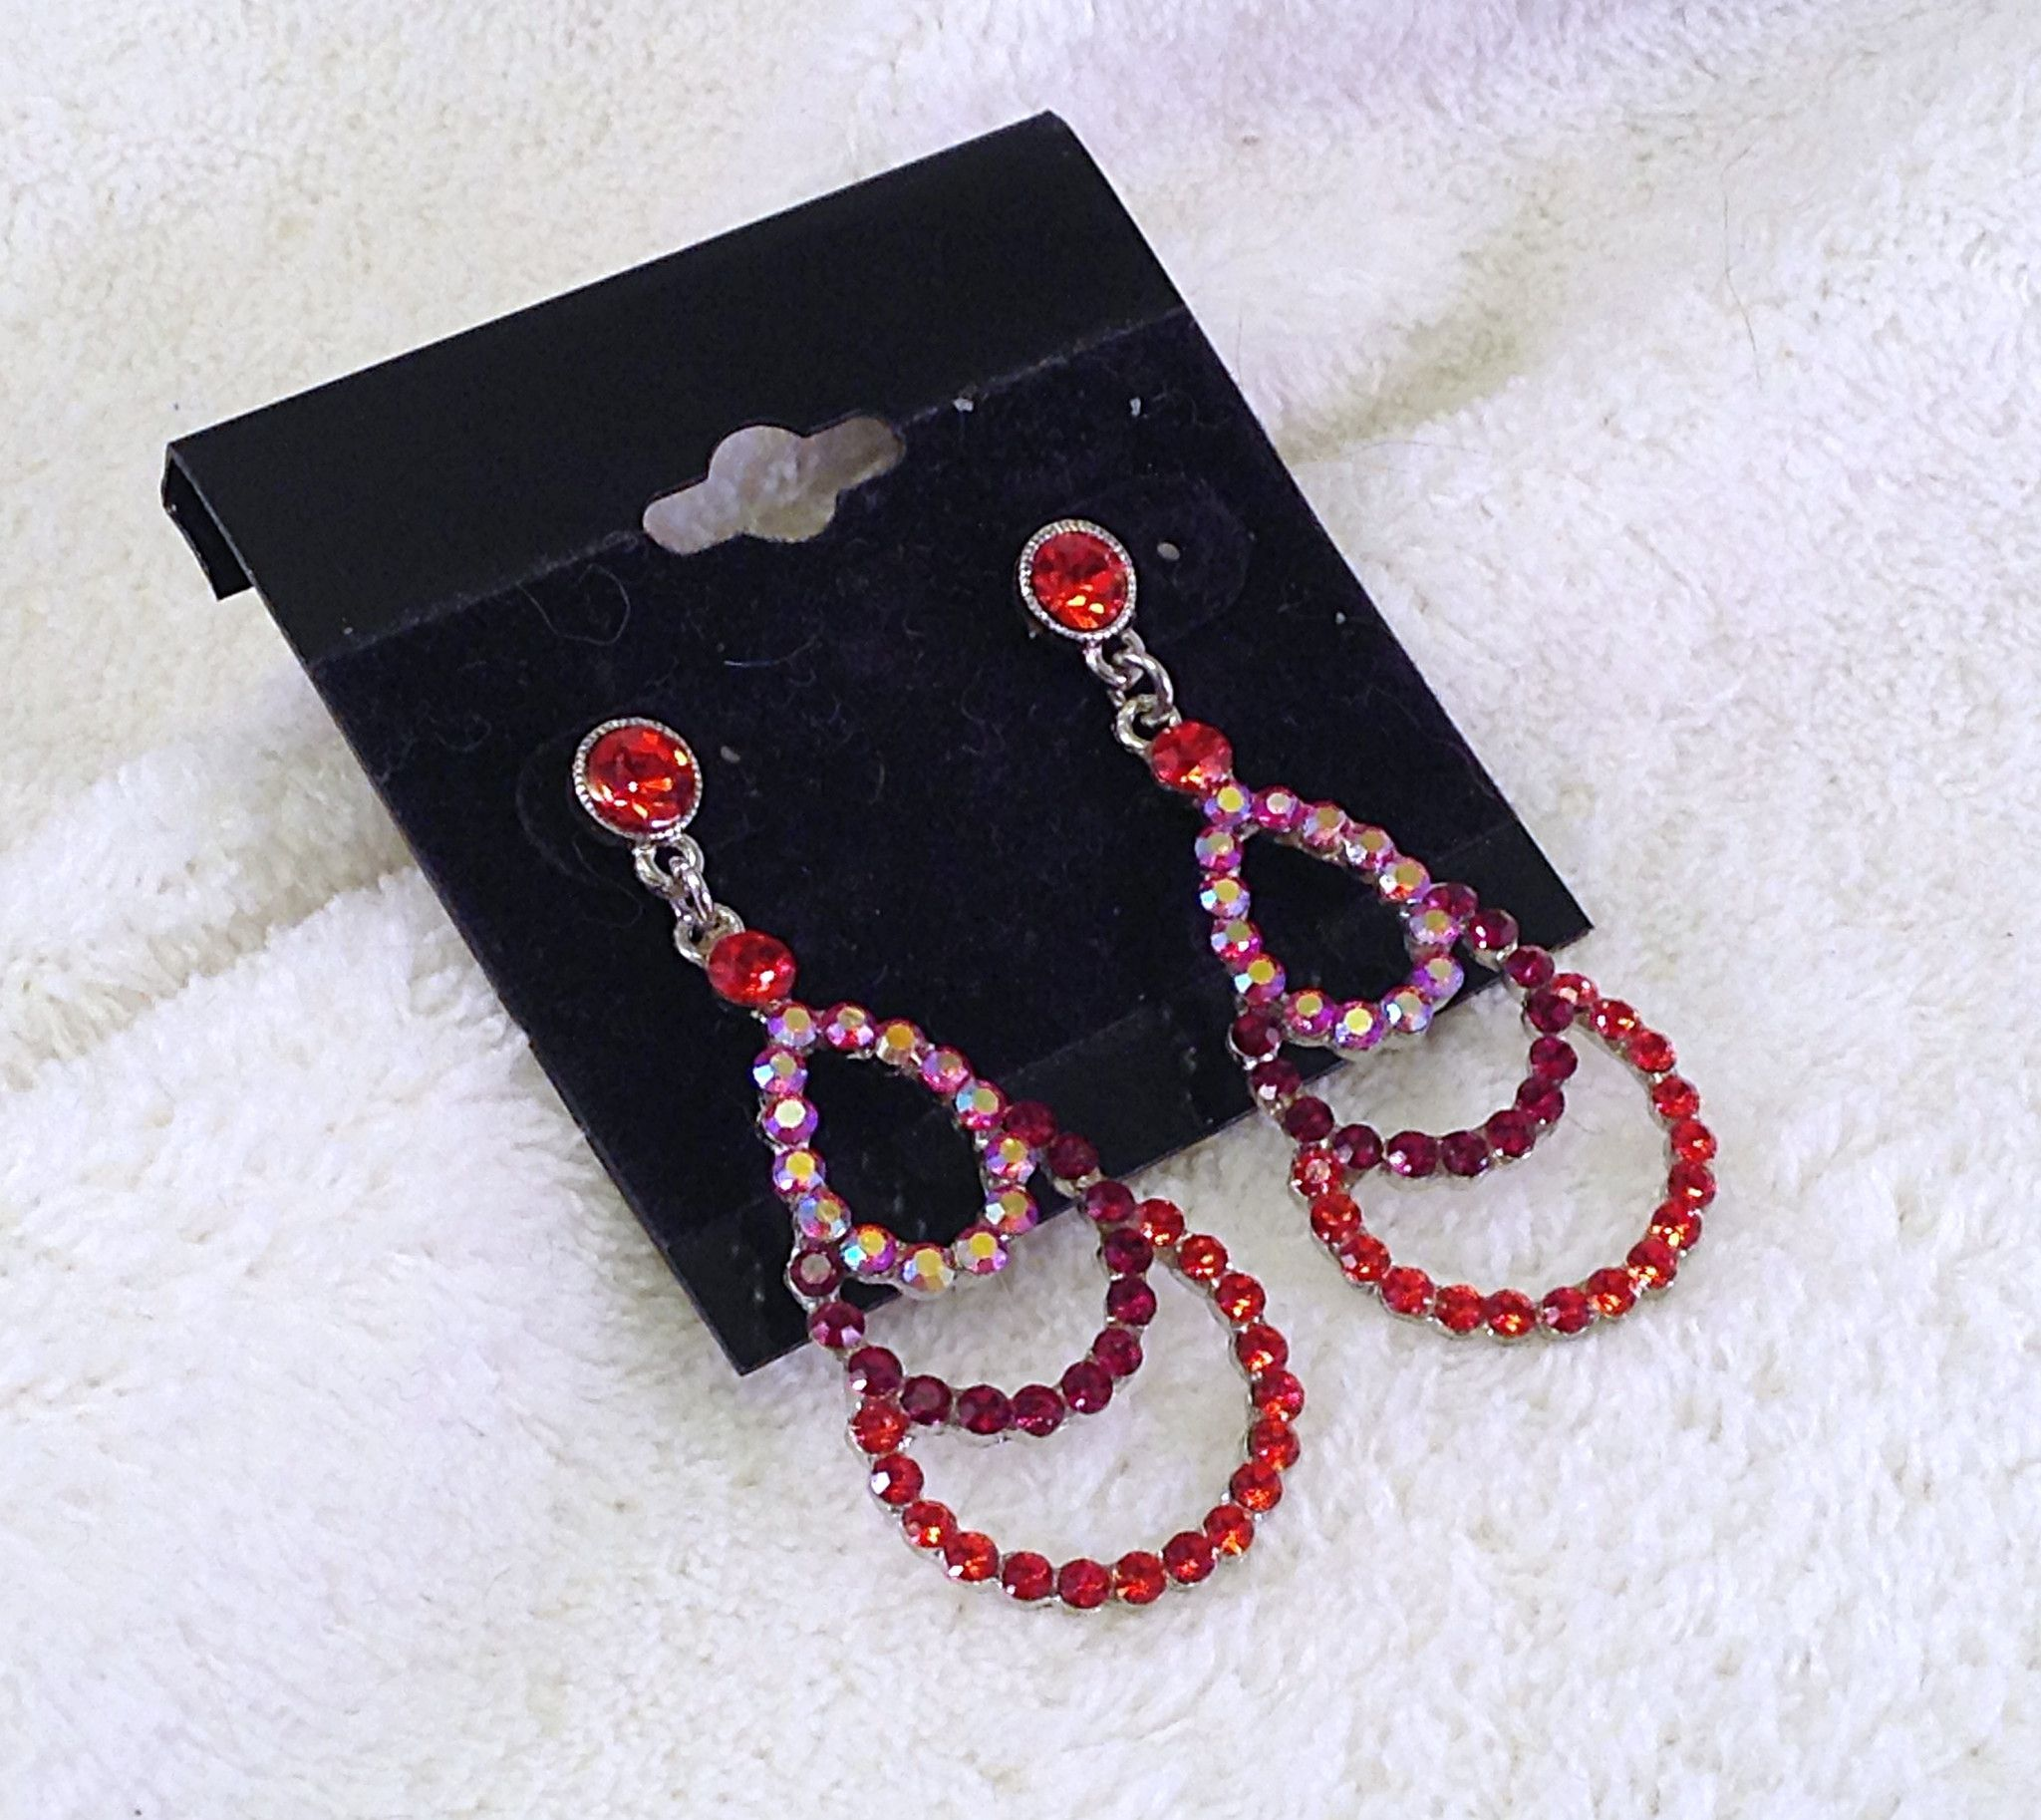 Siam red crystals with ab accent stones on small chandelier earrings siam red crystals with ab accent stones on small chandelier earrings arubaitofo Choice Image